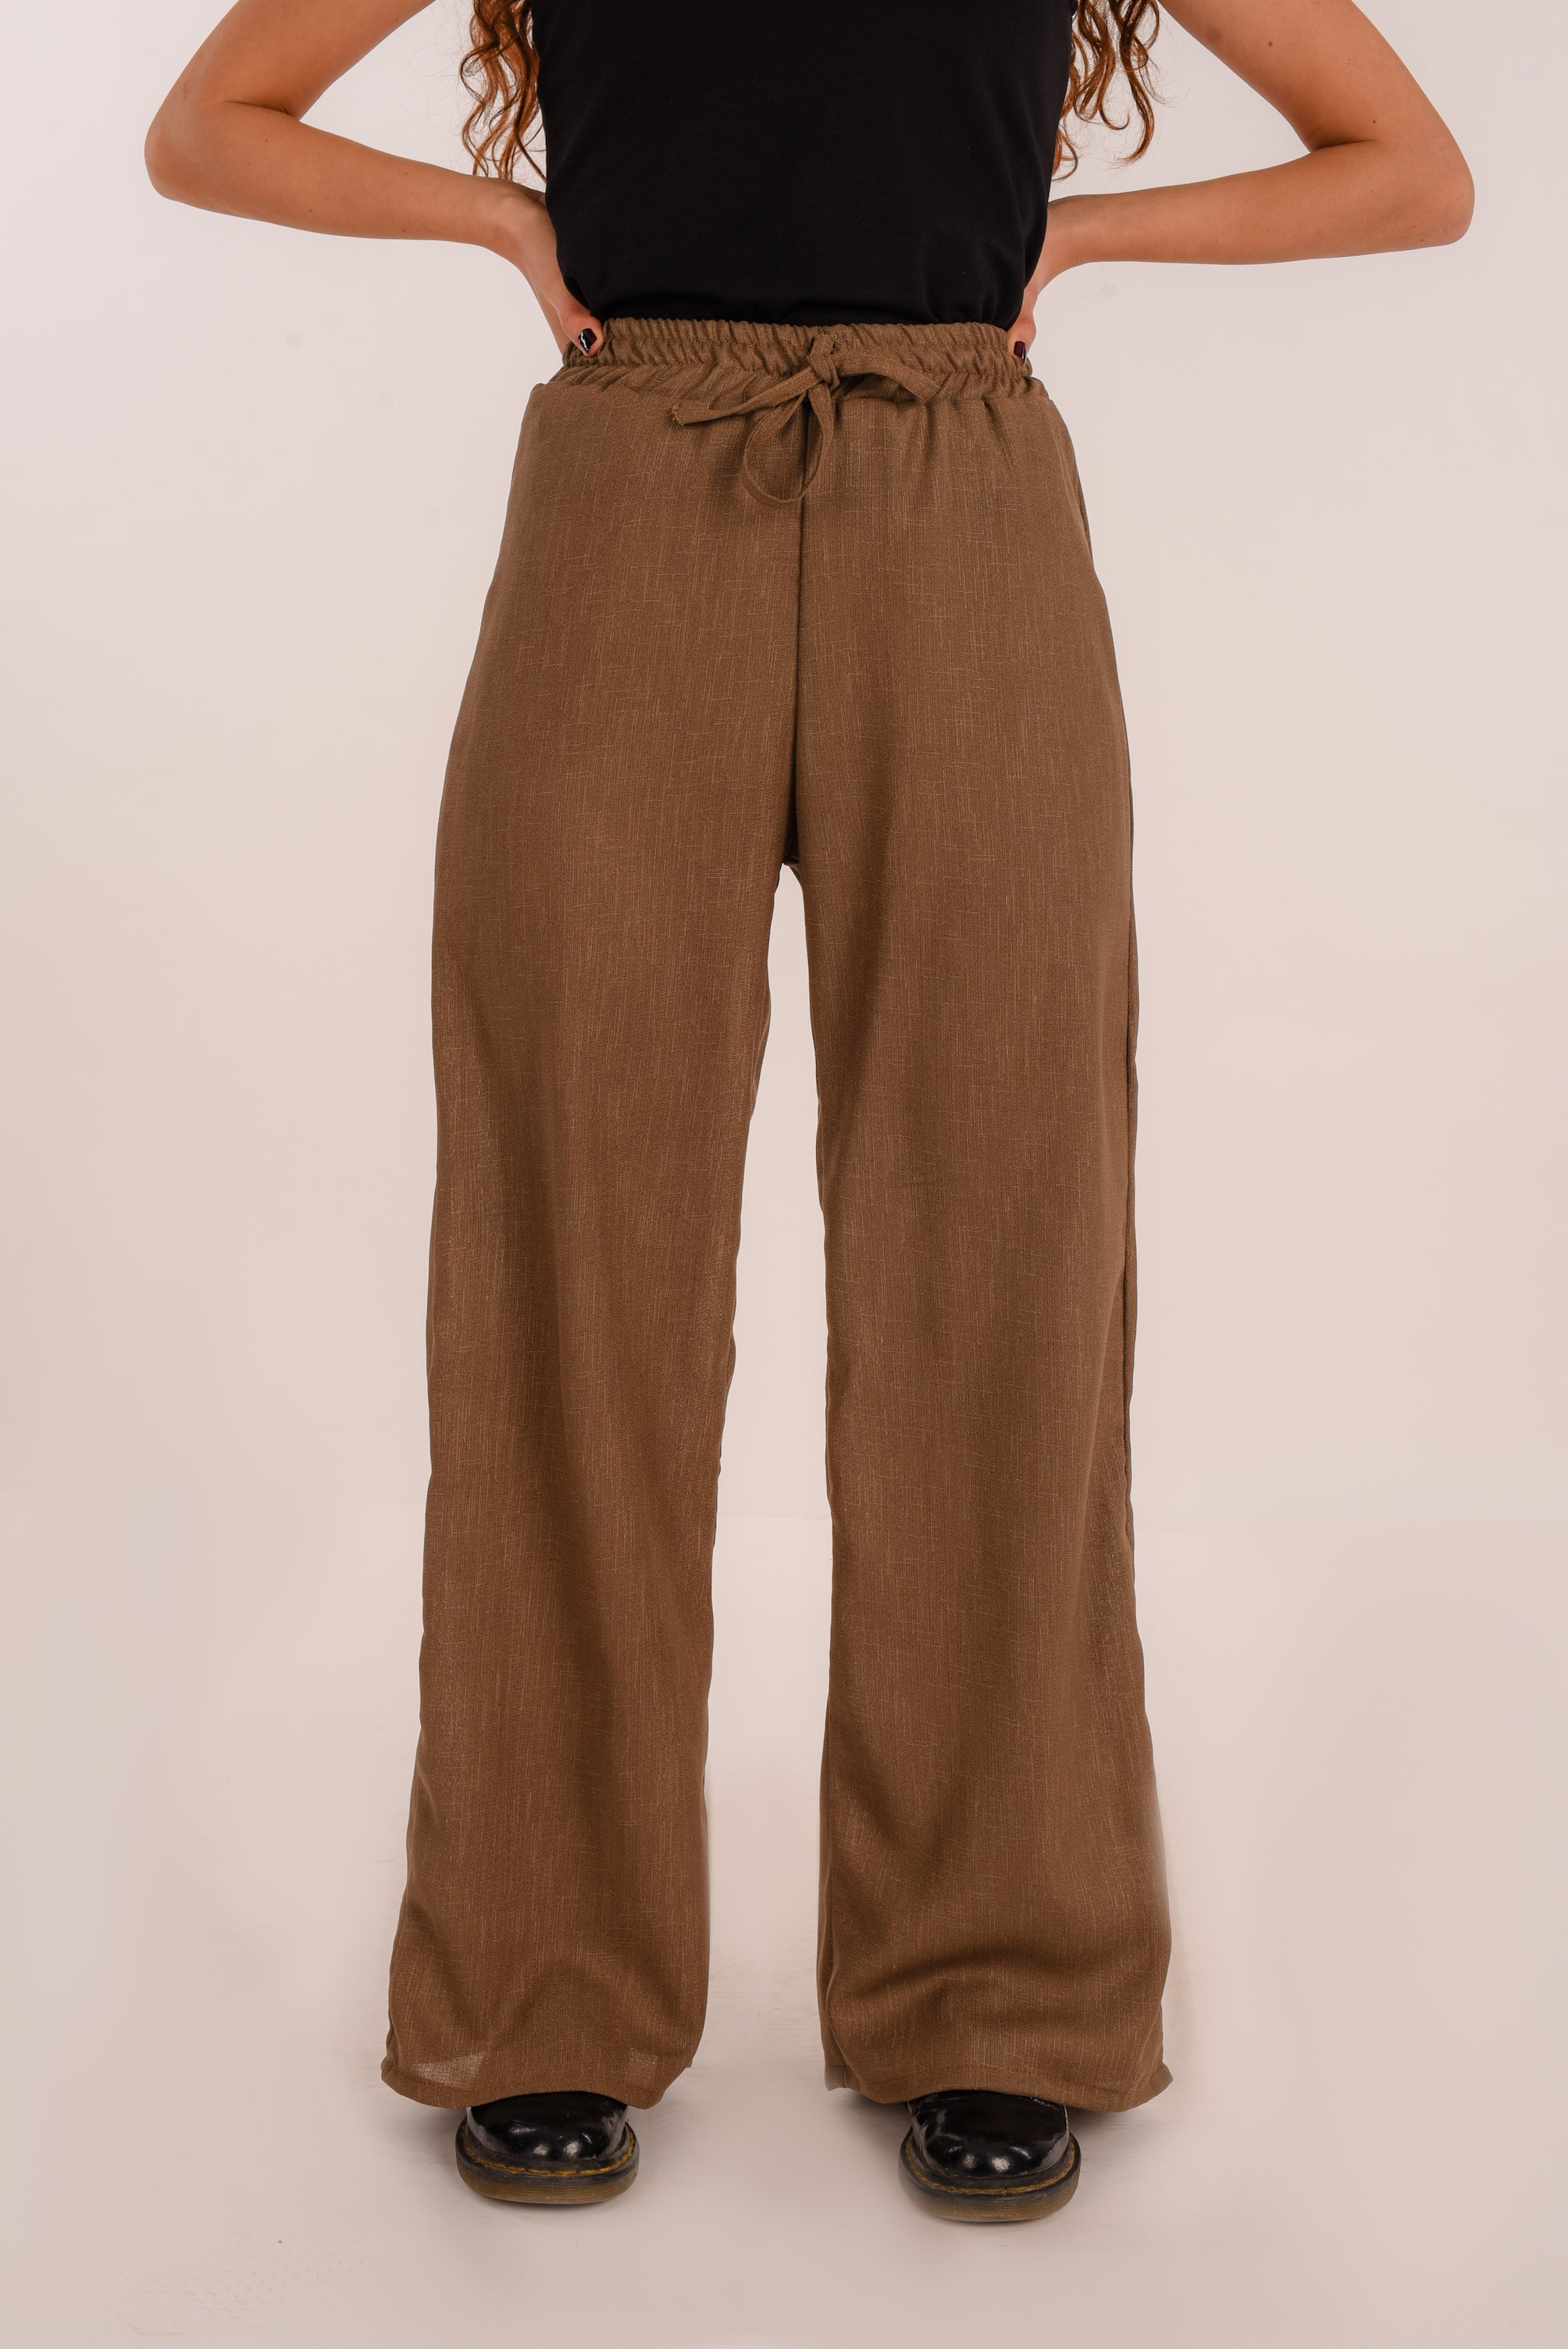 Exceptions Pants in olive